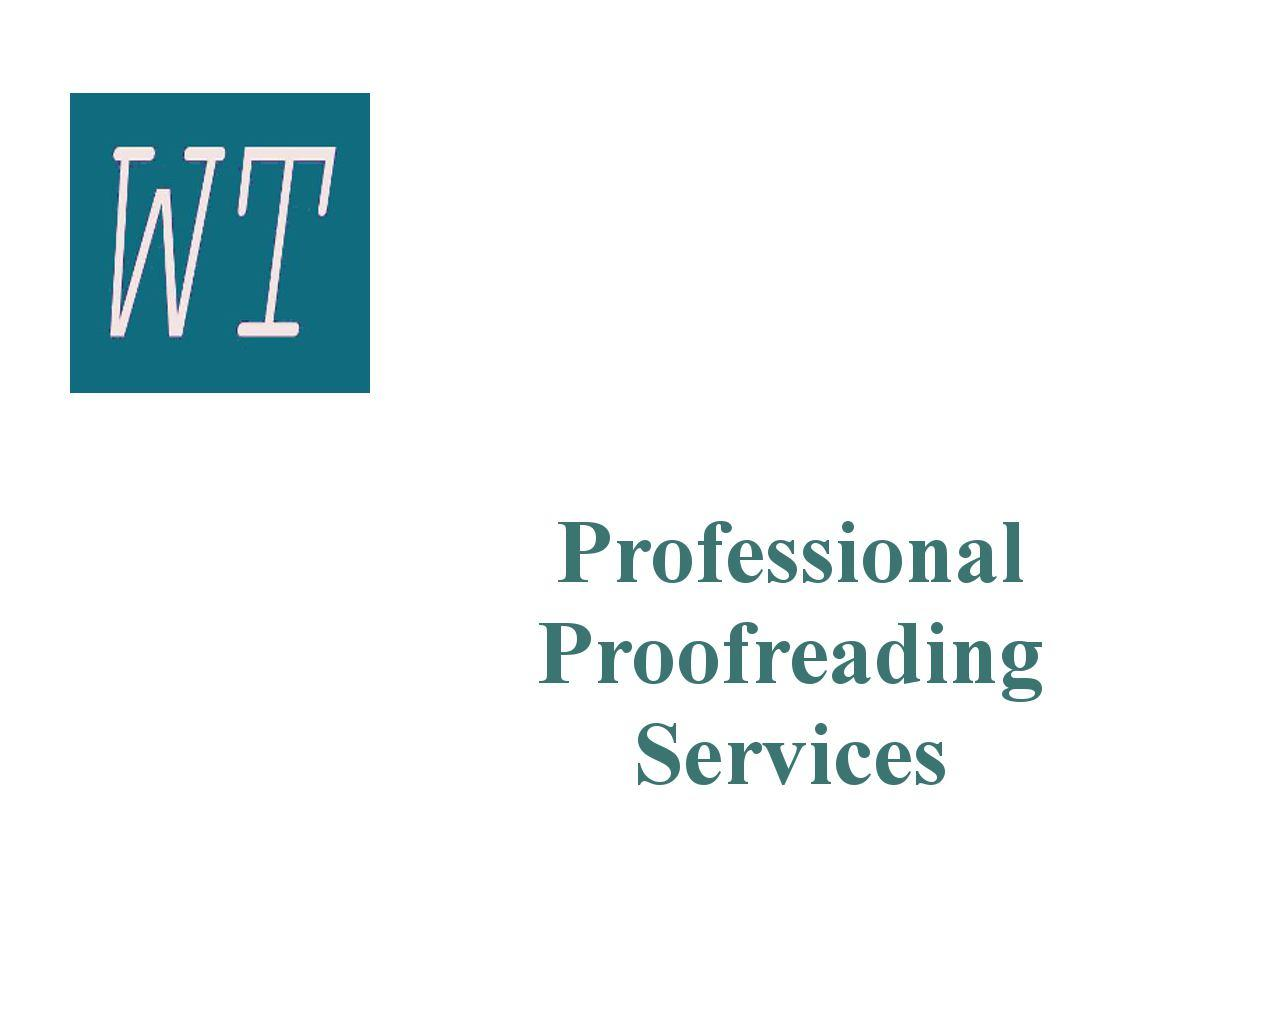 recommendation proofreading When proofreading important documents that must be perfect, have someone read the message aloud, spelling names and difficult words c proofread a printed copy of a long, complex document once to catch all errors.